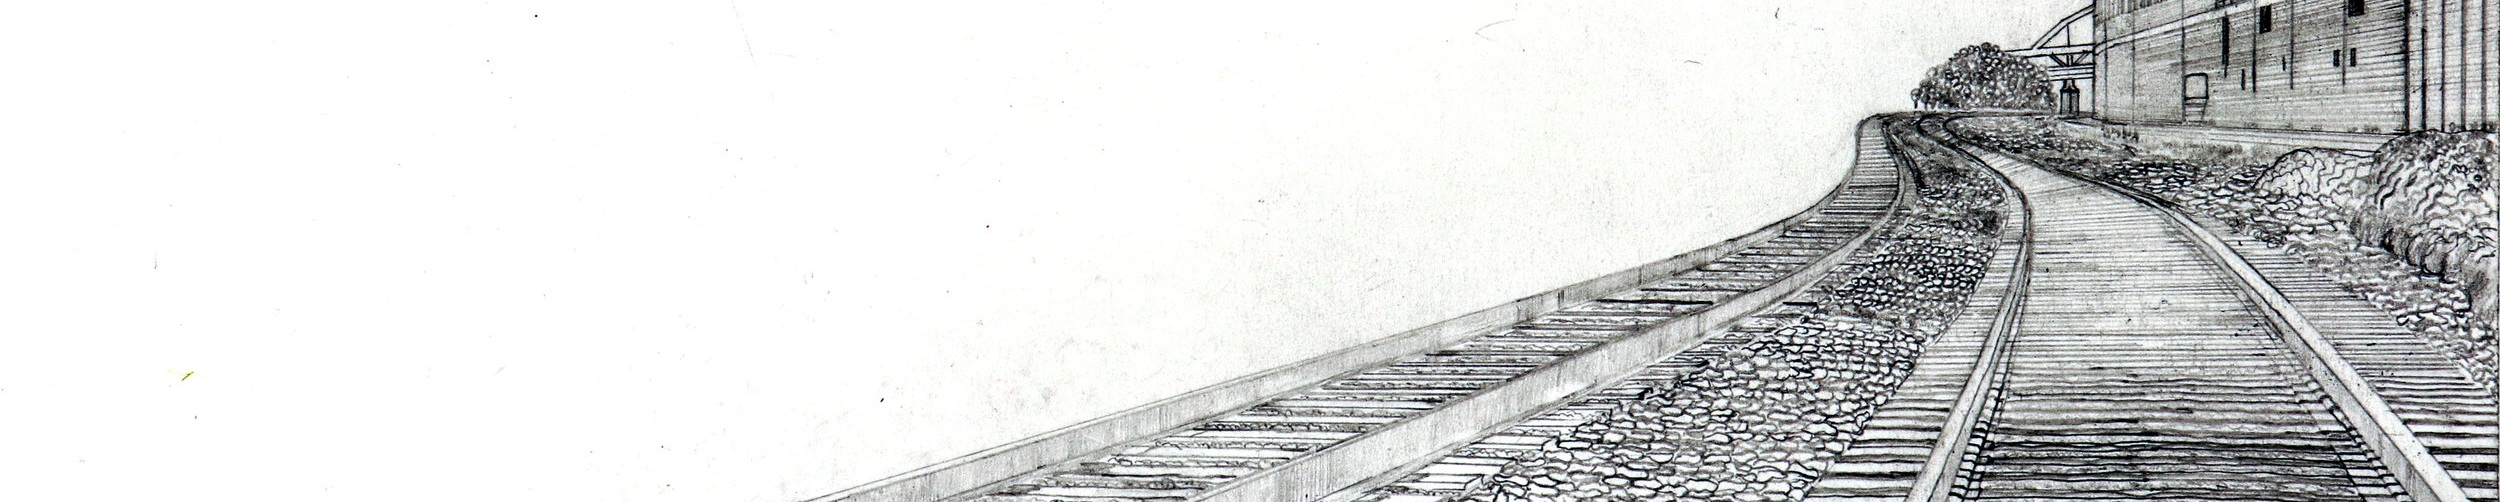 train+tracks+-+graphite+-+2019.jpg